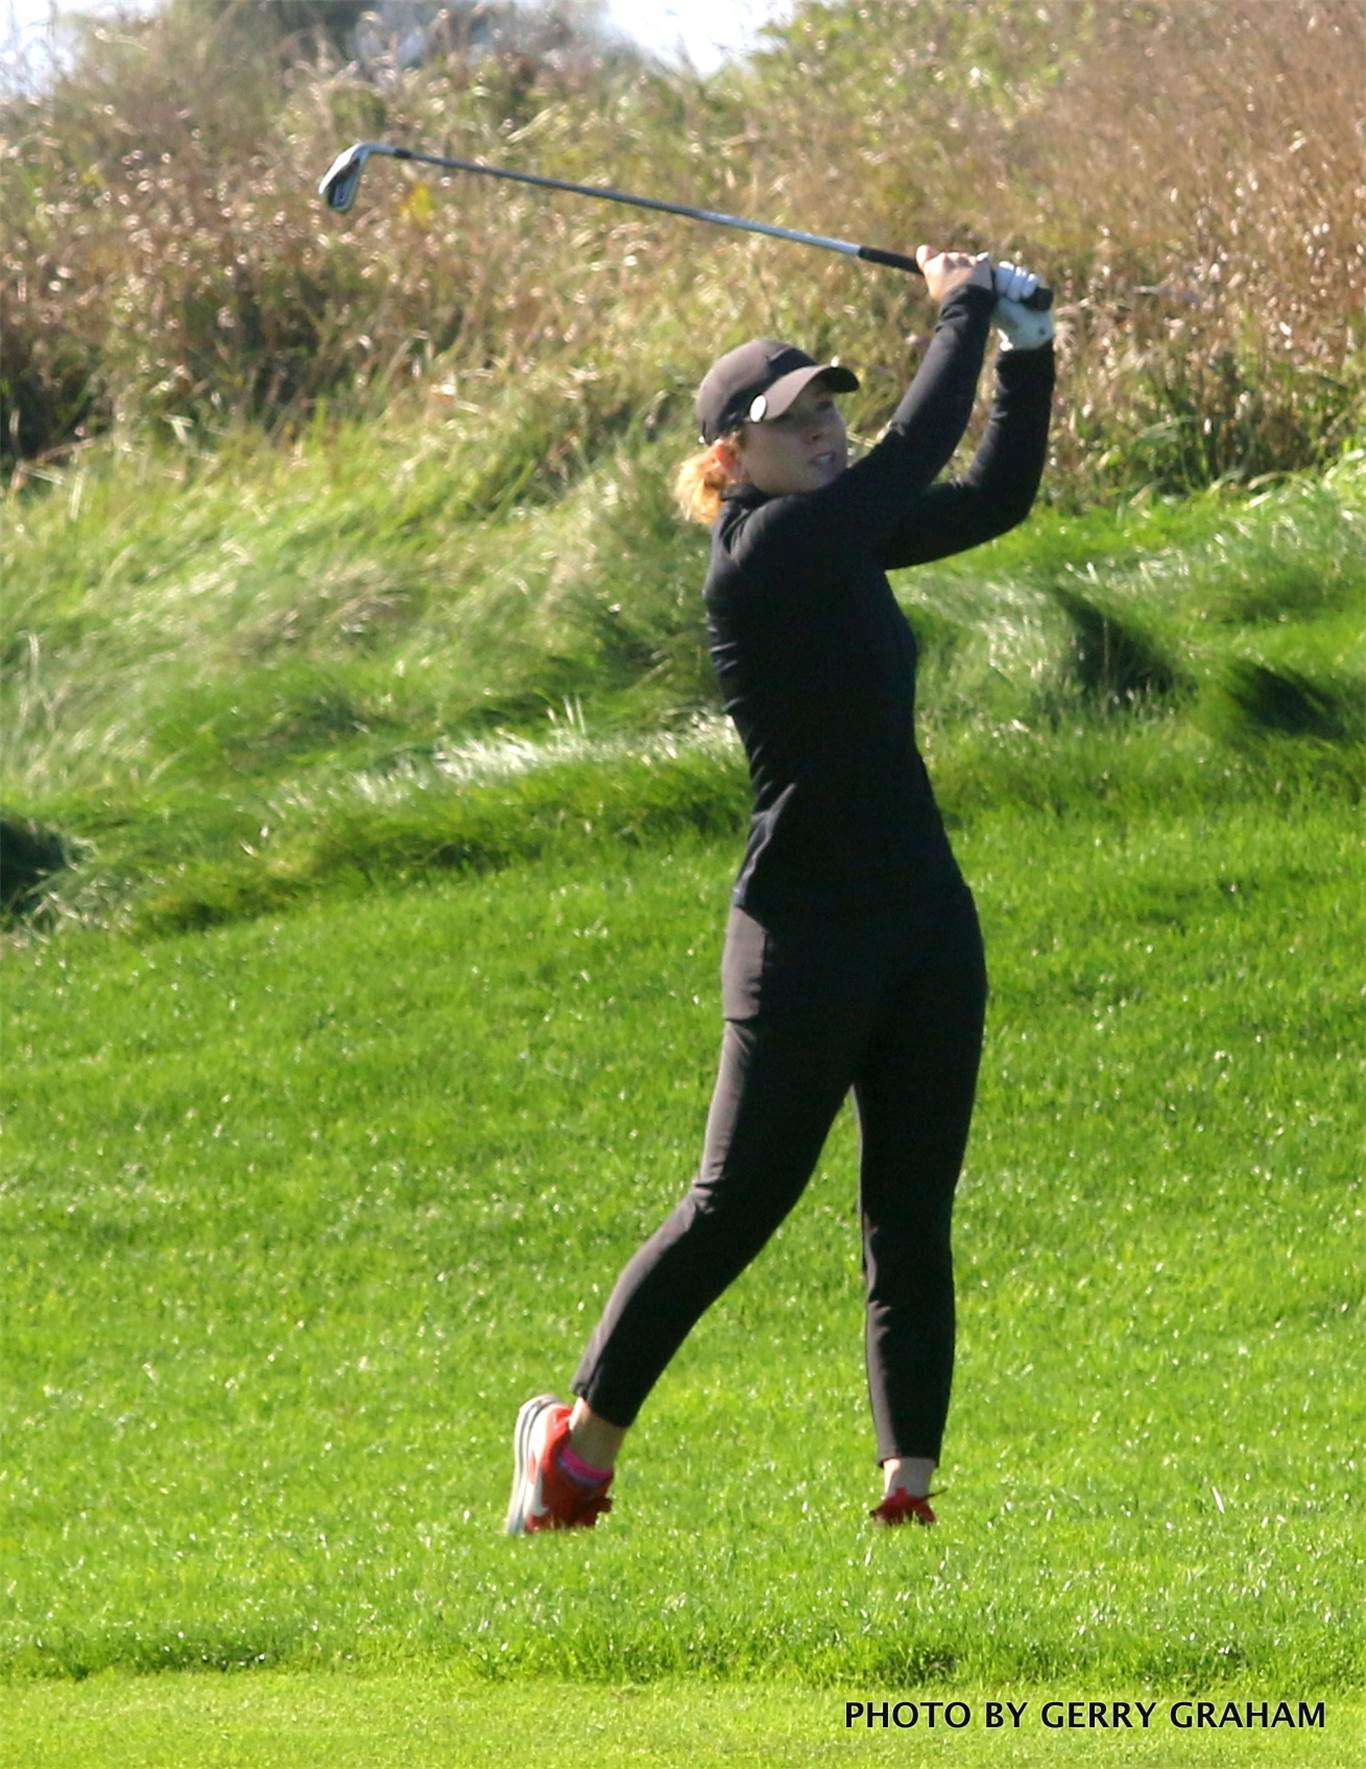 In the girls' 10-player division at Piper's Heath, Payton Bennett of Newman shot a 95. Photo by Gerry Graham.